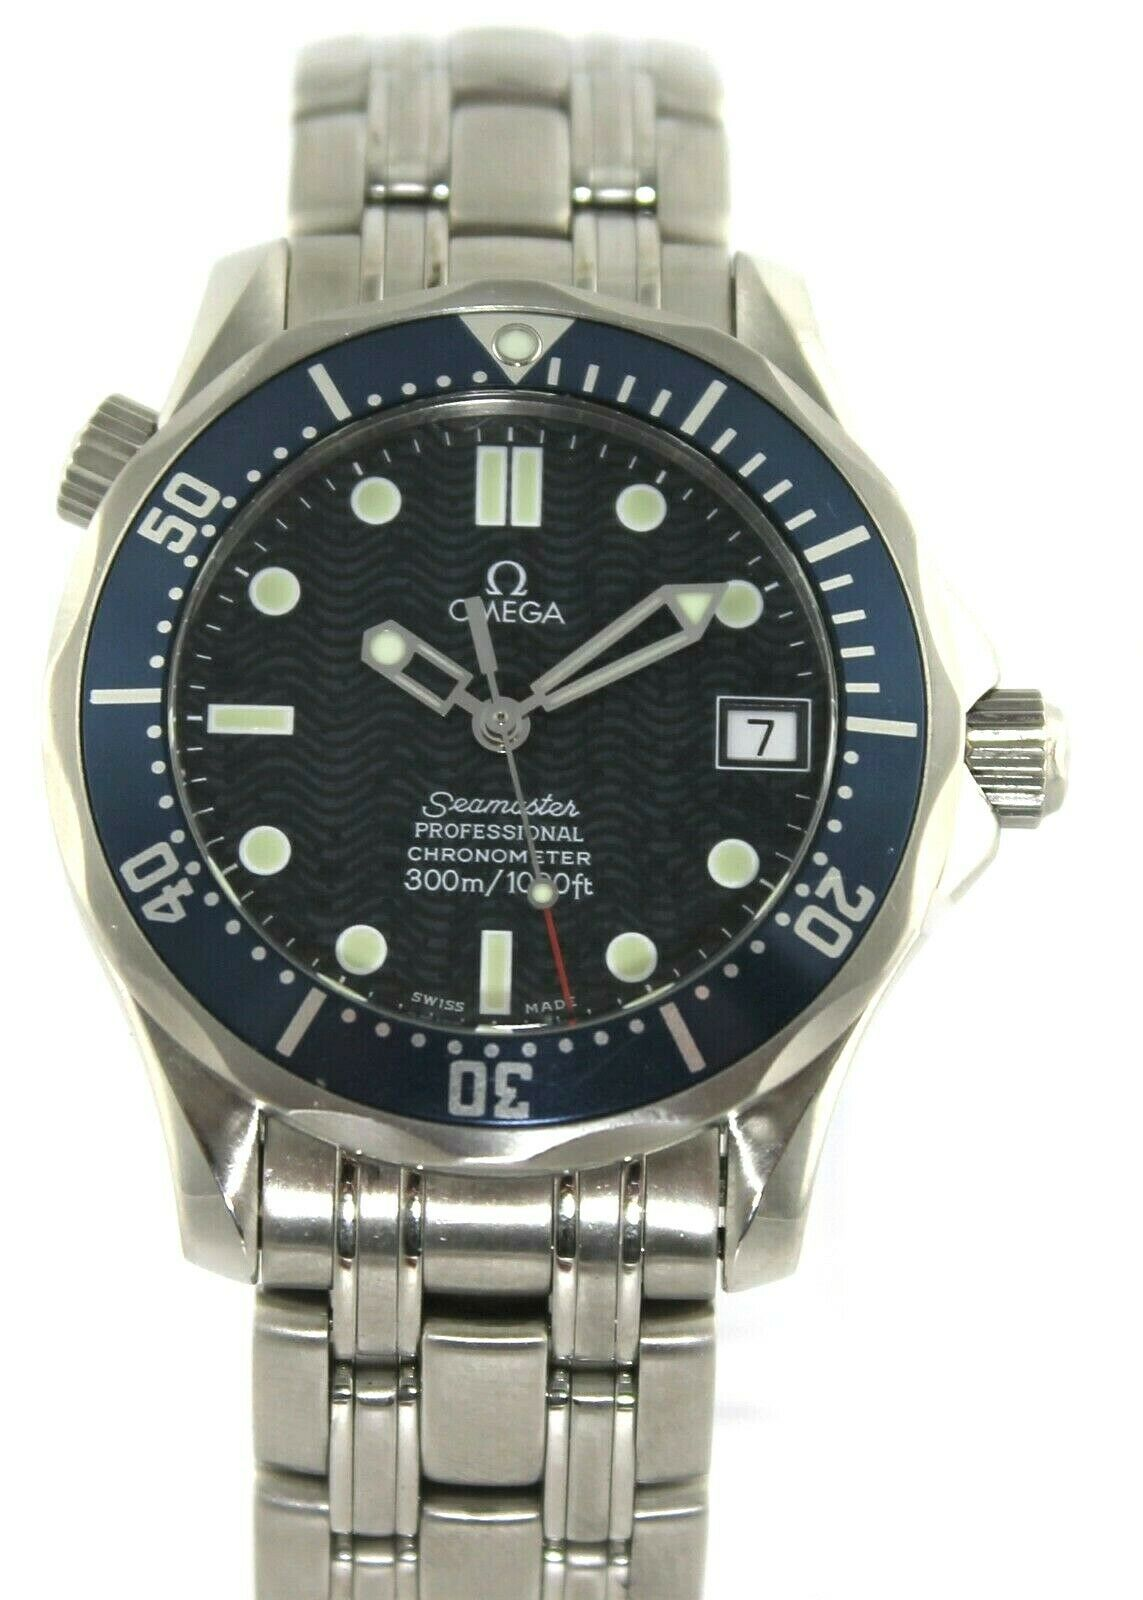 OMEGA SEAMASTER JAMES BOND CHRONOMETER 2551.80 PROFESSIONAL MIDSIZE BLUE WATCH